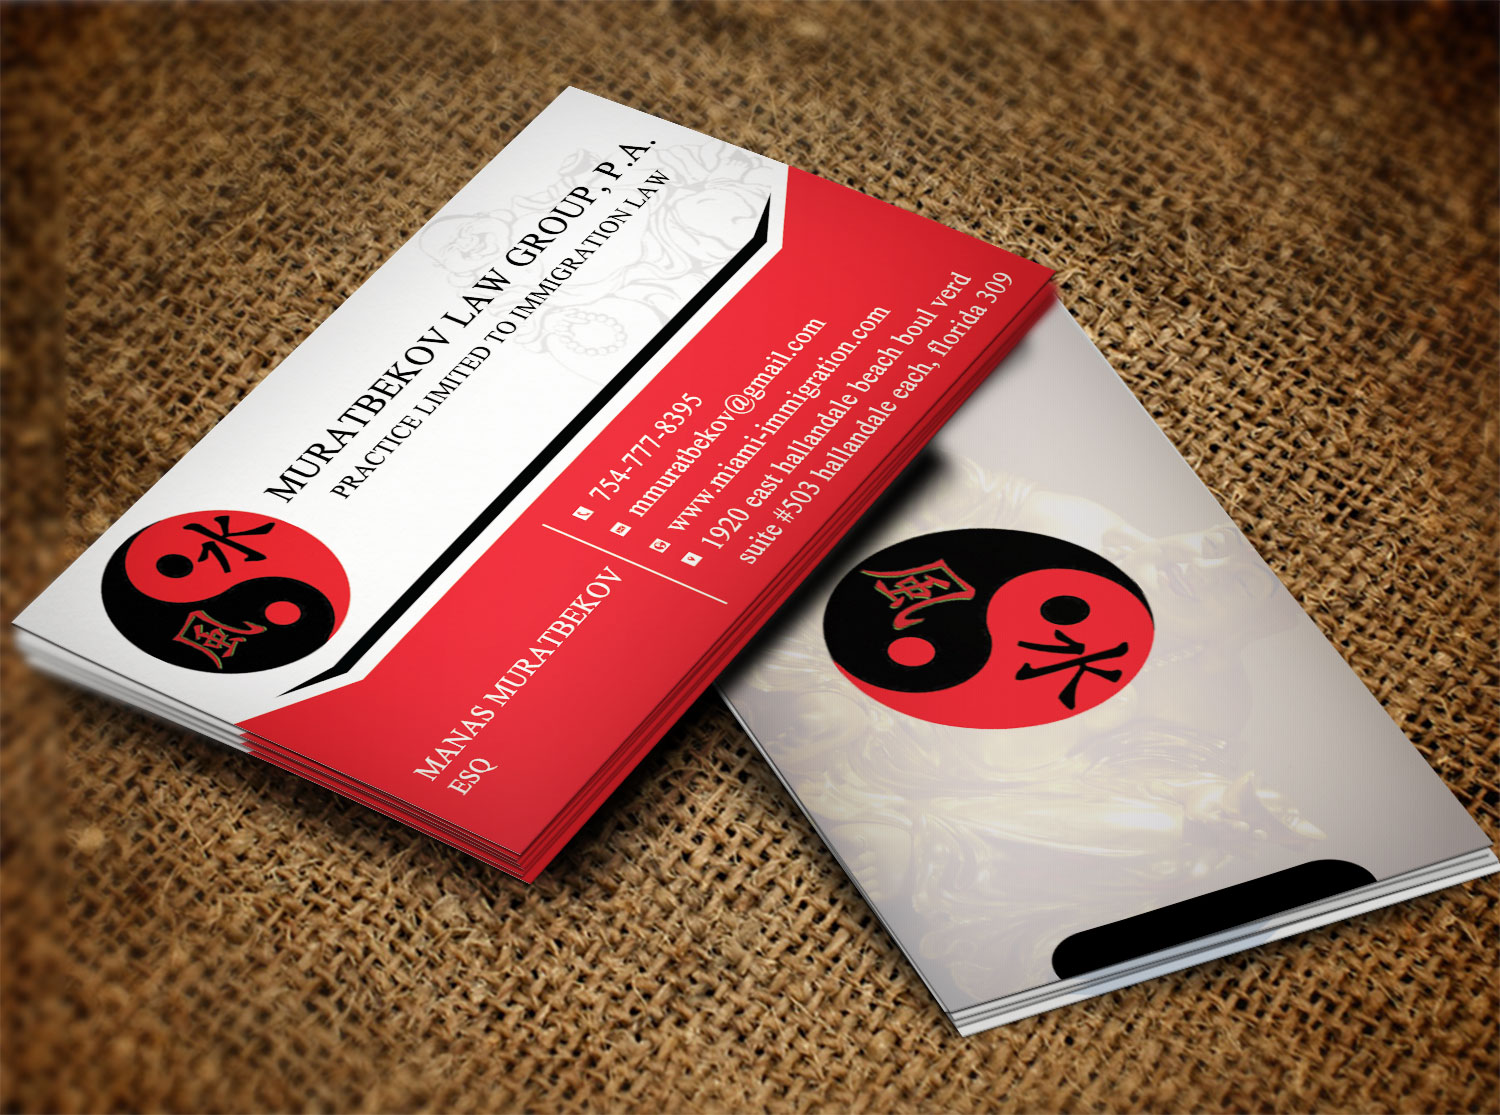 Professional masculine business business card design for business card design by creation lanka for muratbekov law group pa design 8518422 reheart